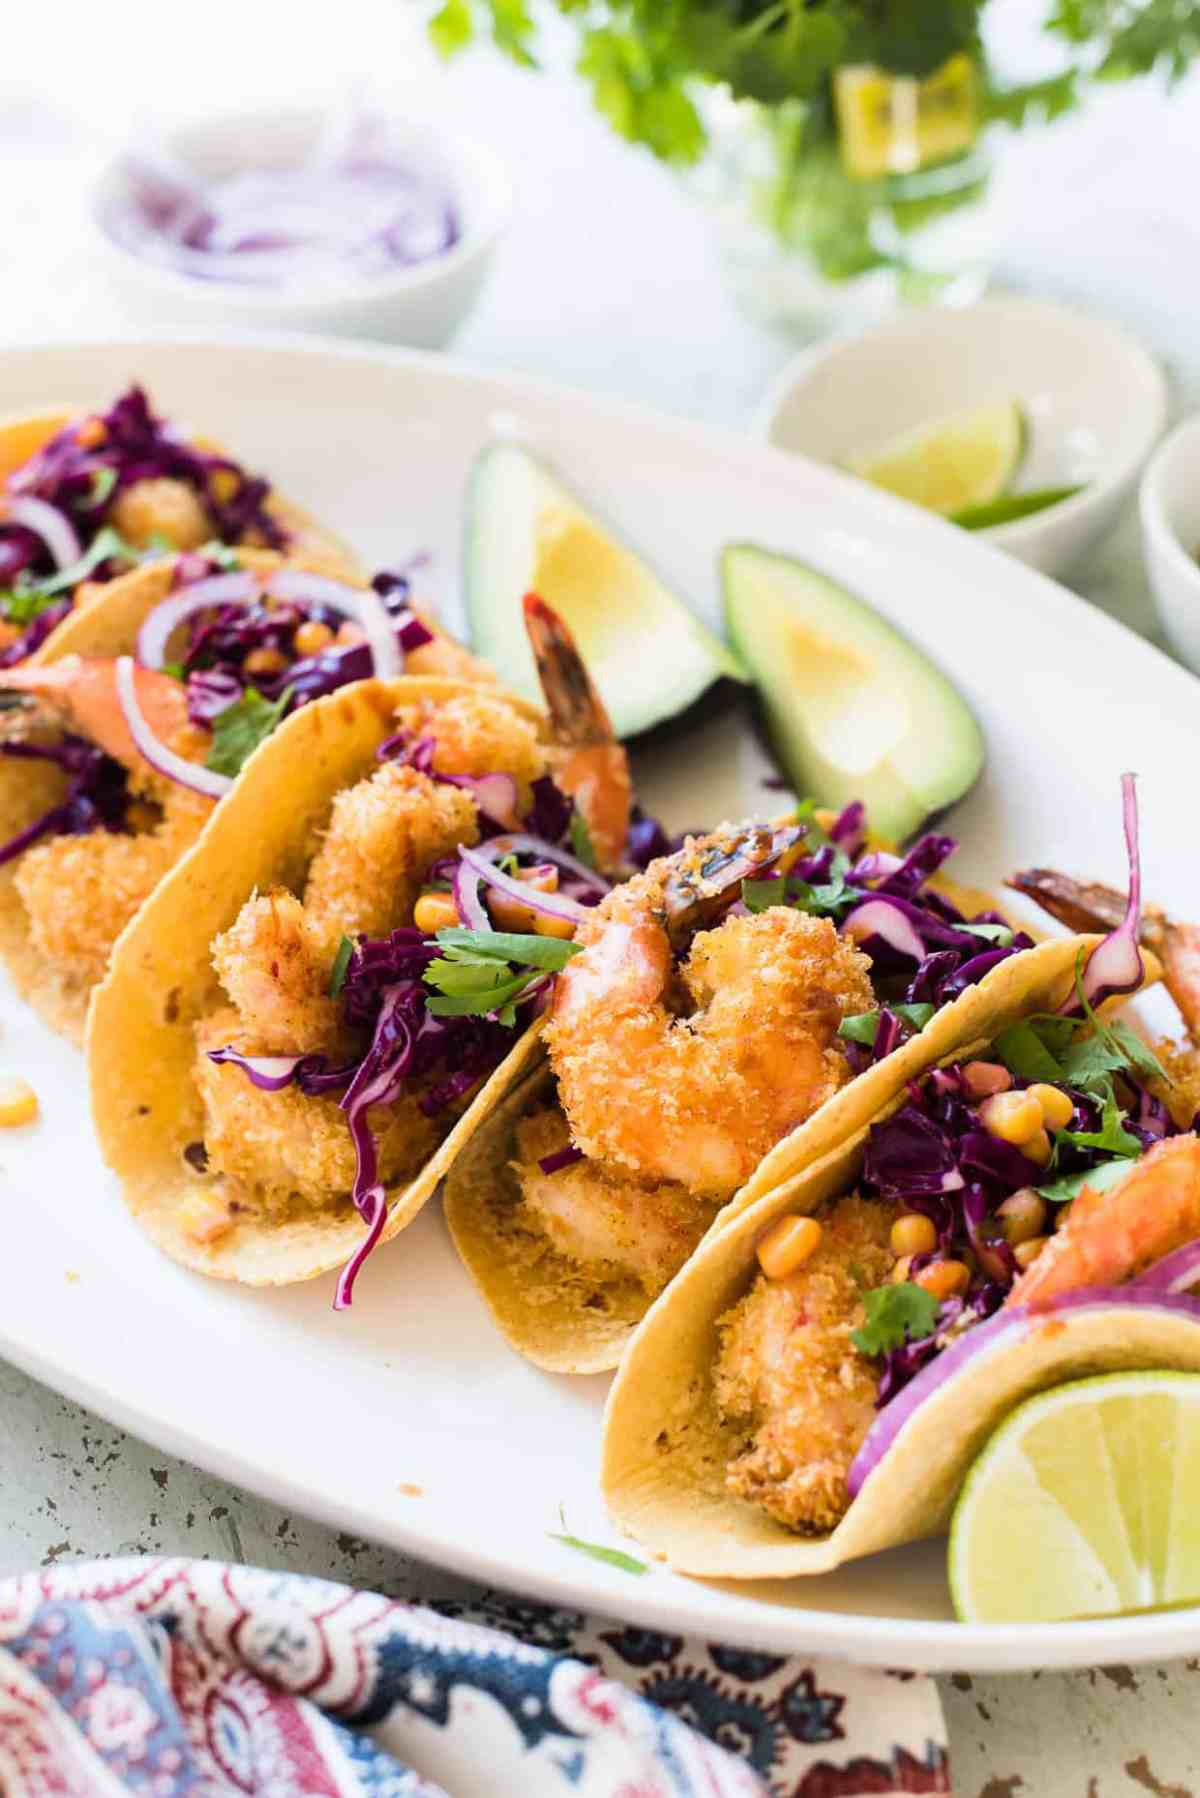 Tacos with oven-fried crispy shrimp, red cabbage and corn